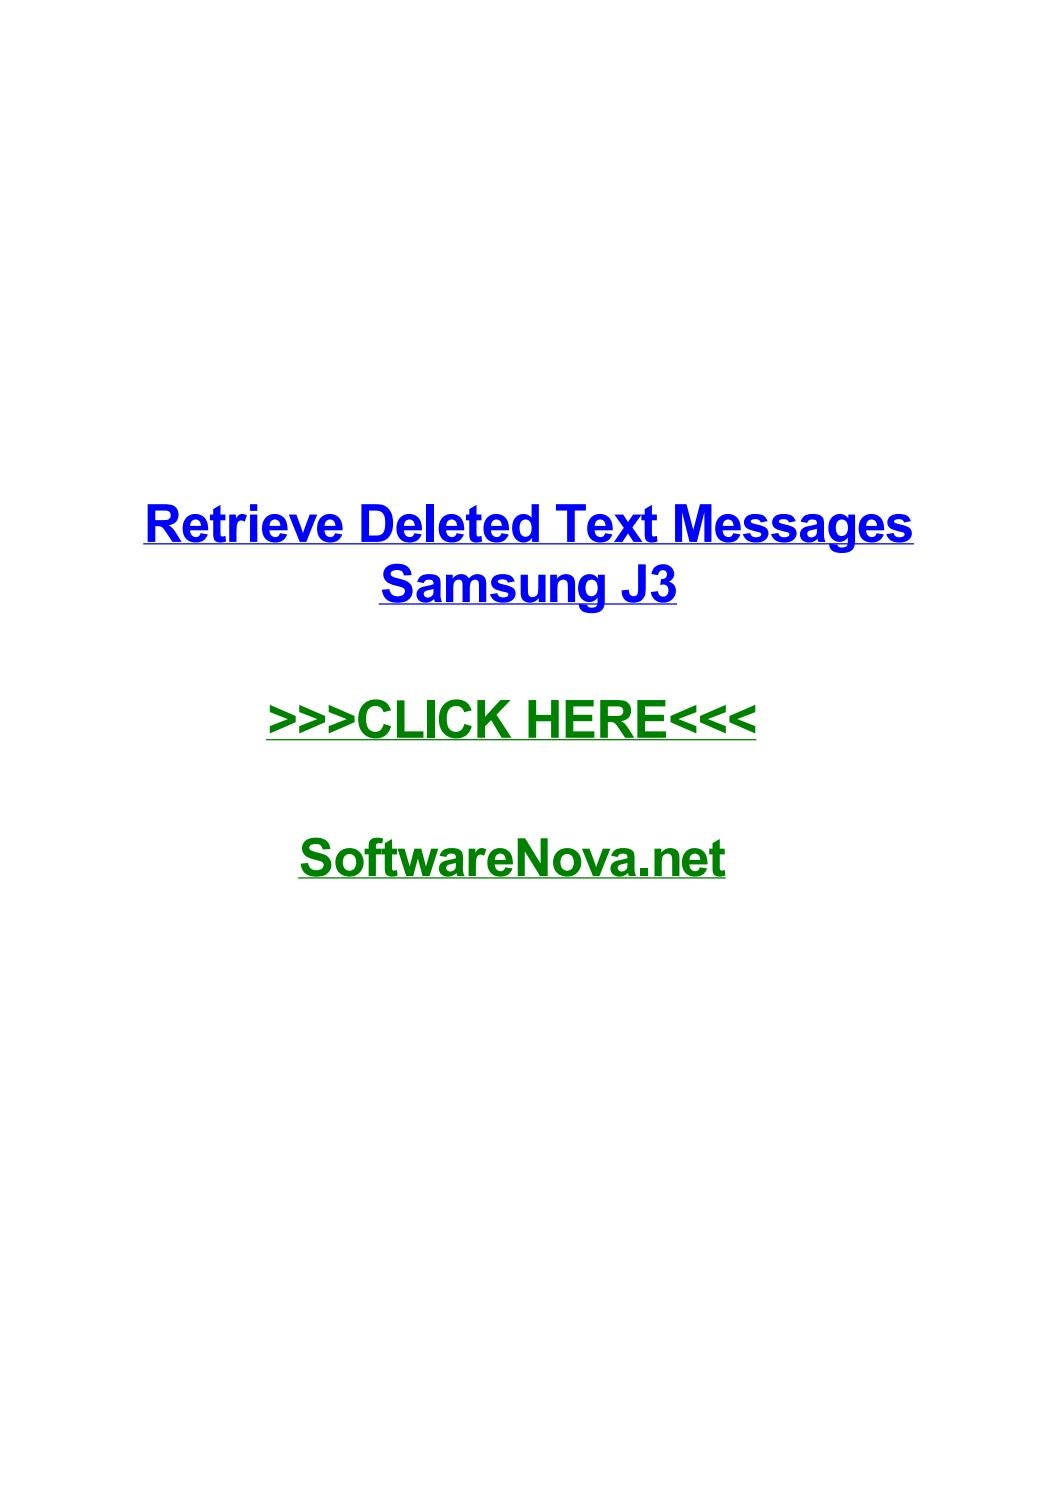 Retrieve deleted text messages samsung j3 by daniellemobel